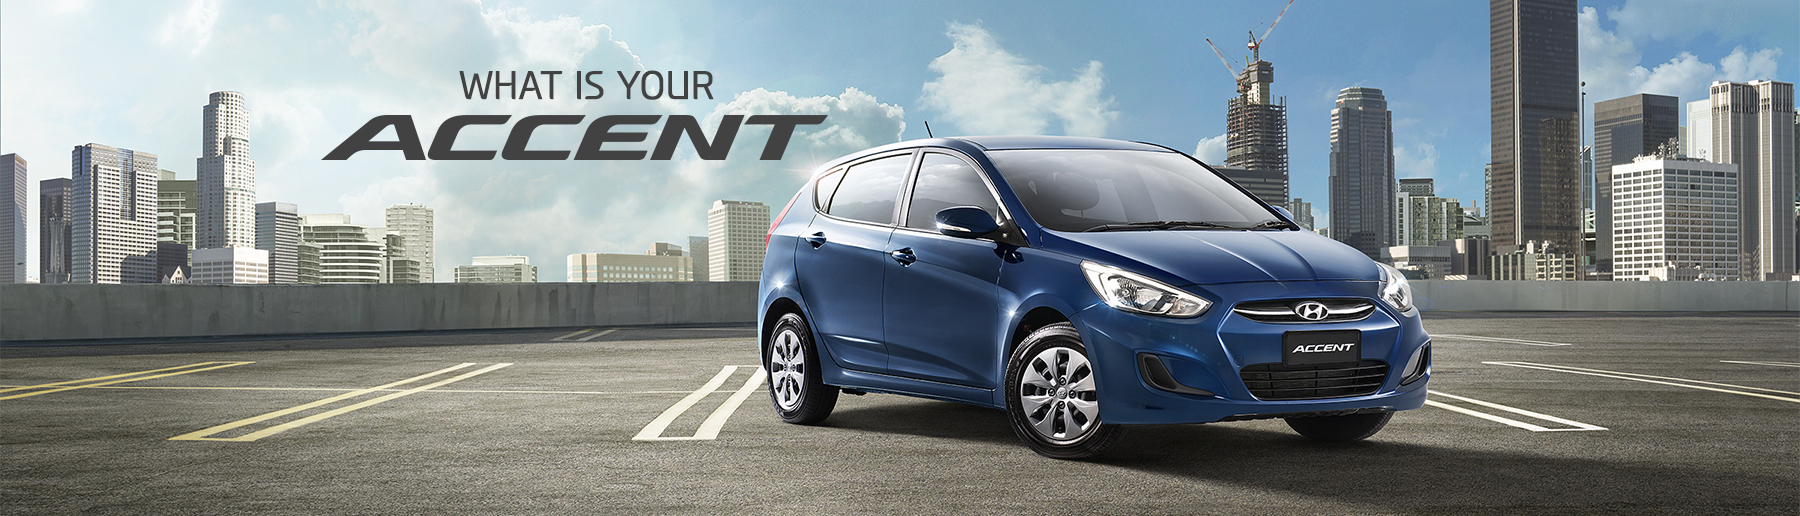 Accent | Now at Yarra Hyundai